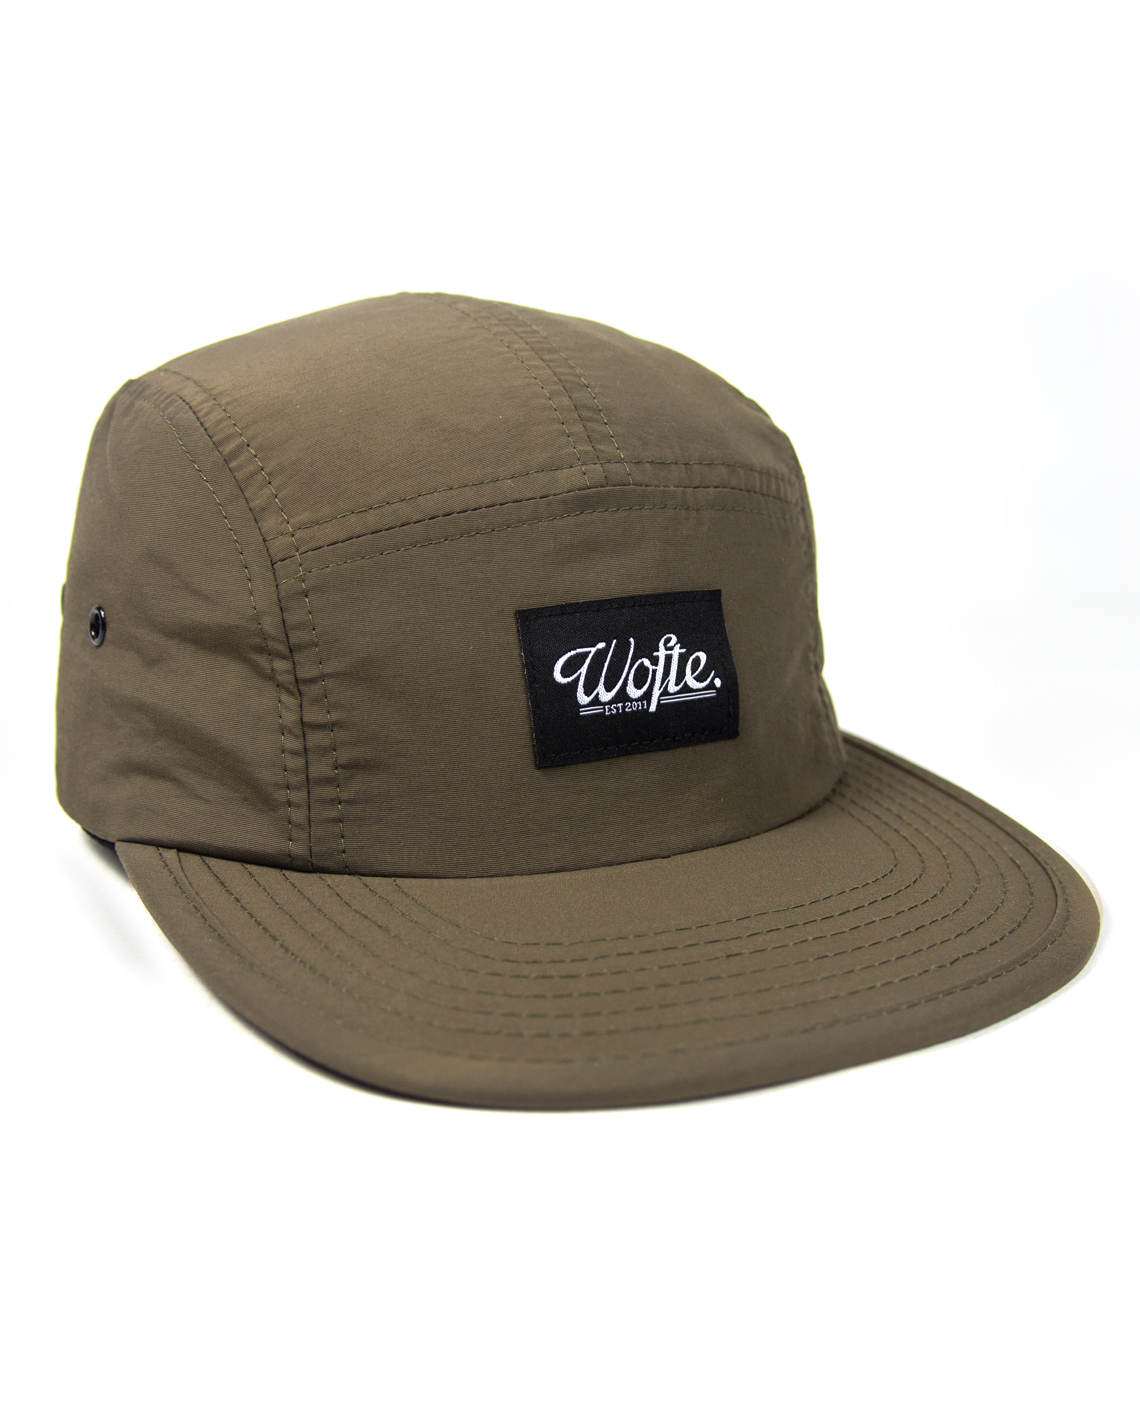 Wofte Clothing Khaki Nylon 5 Panel Cap